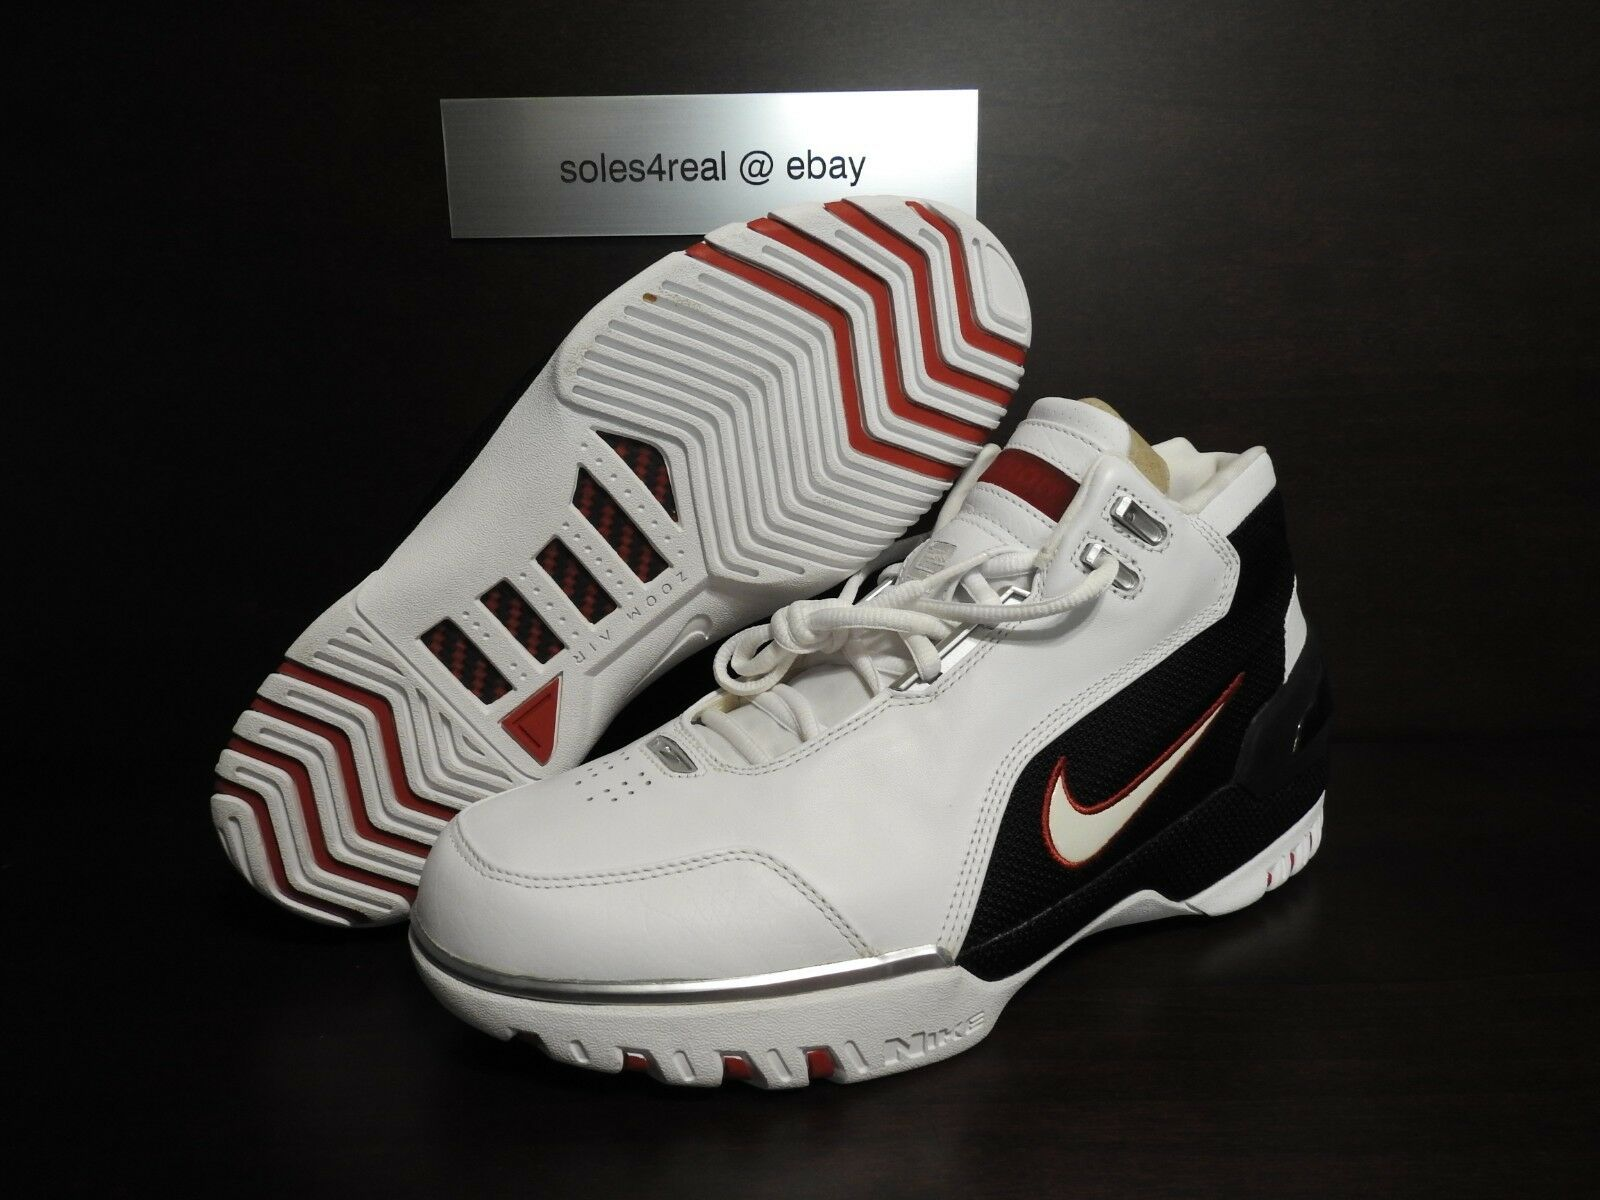 DS NEW NIKE Air Zoom Generation 2003 Size 10 Lebron James 1 I Originals